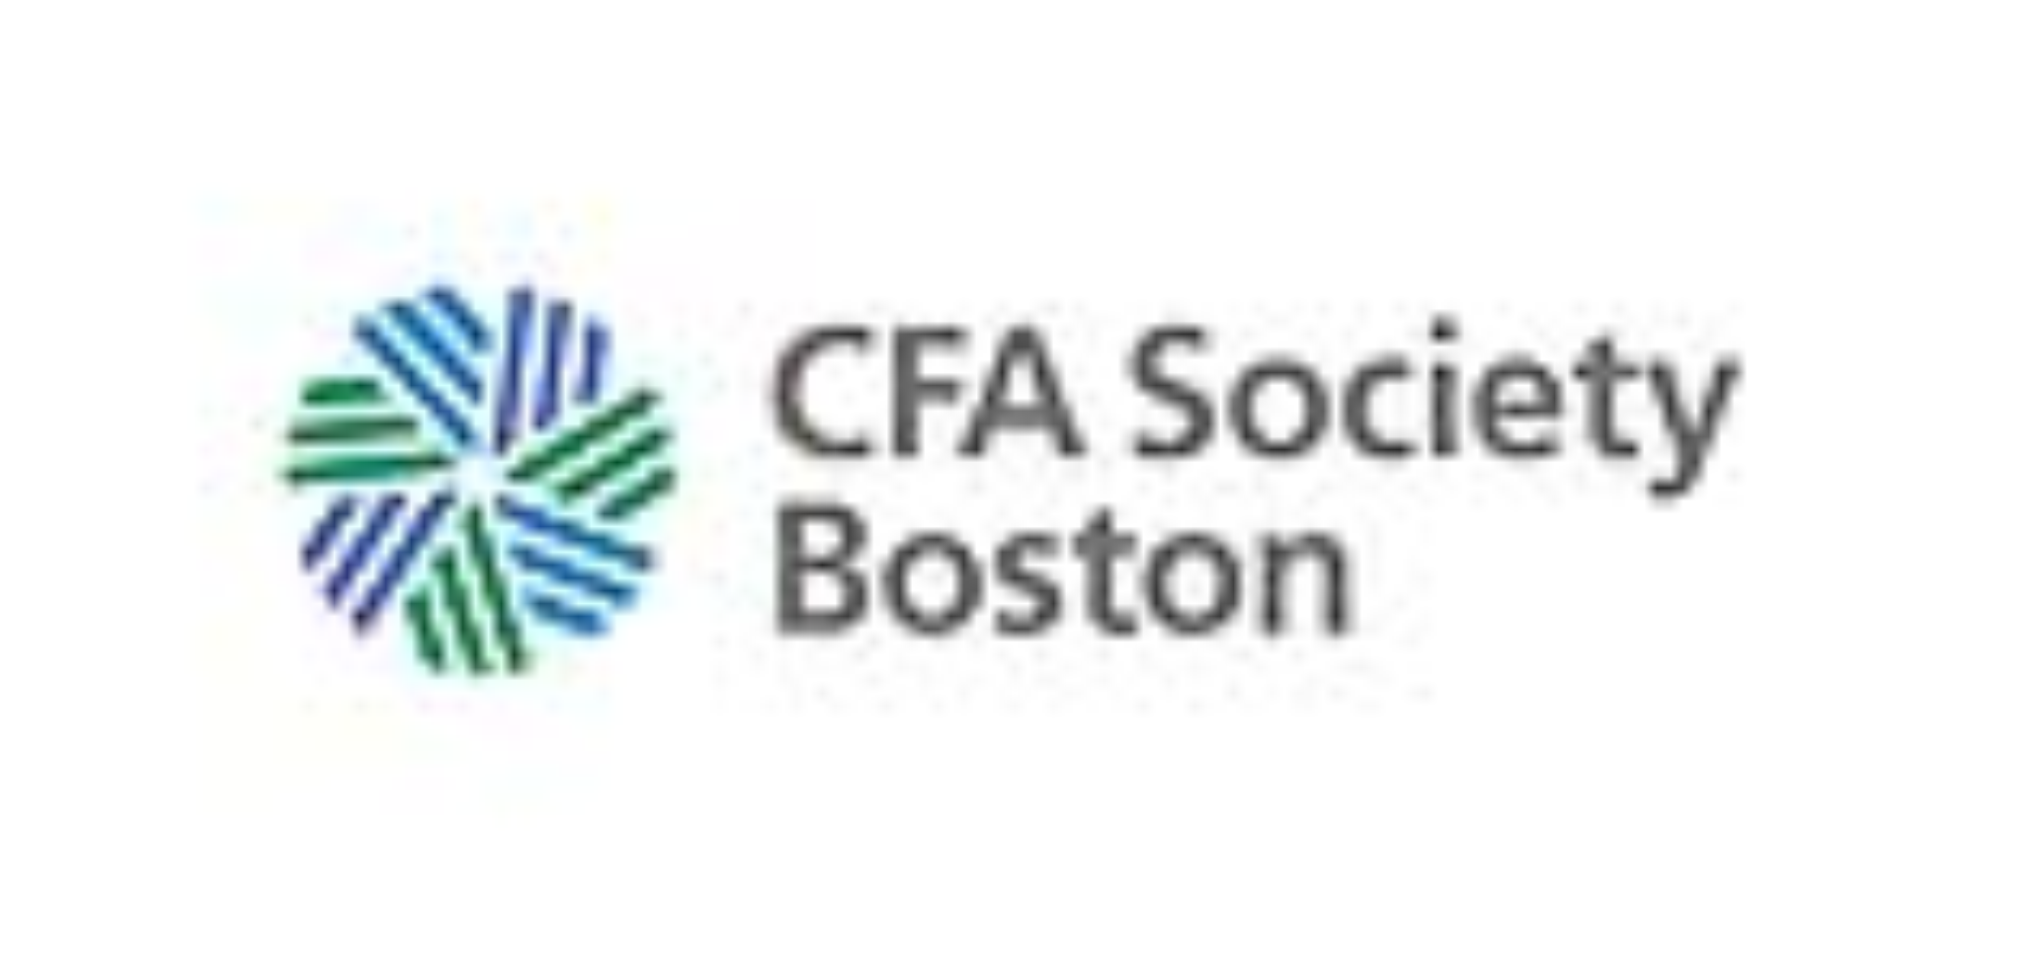 images/Events/CFA_Boston_RGB.jpg